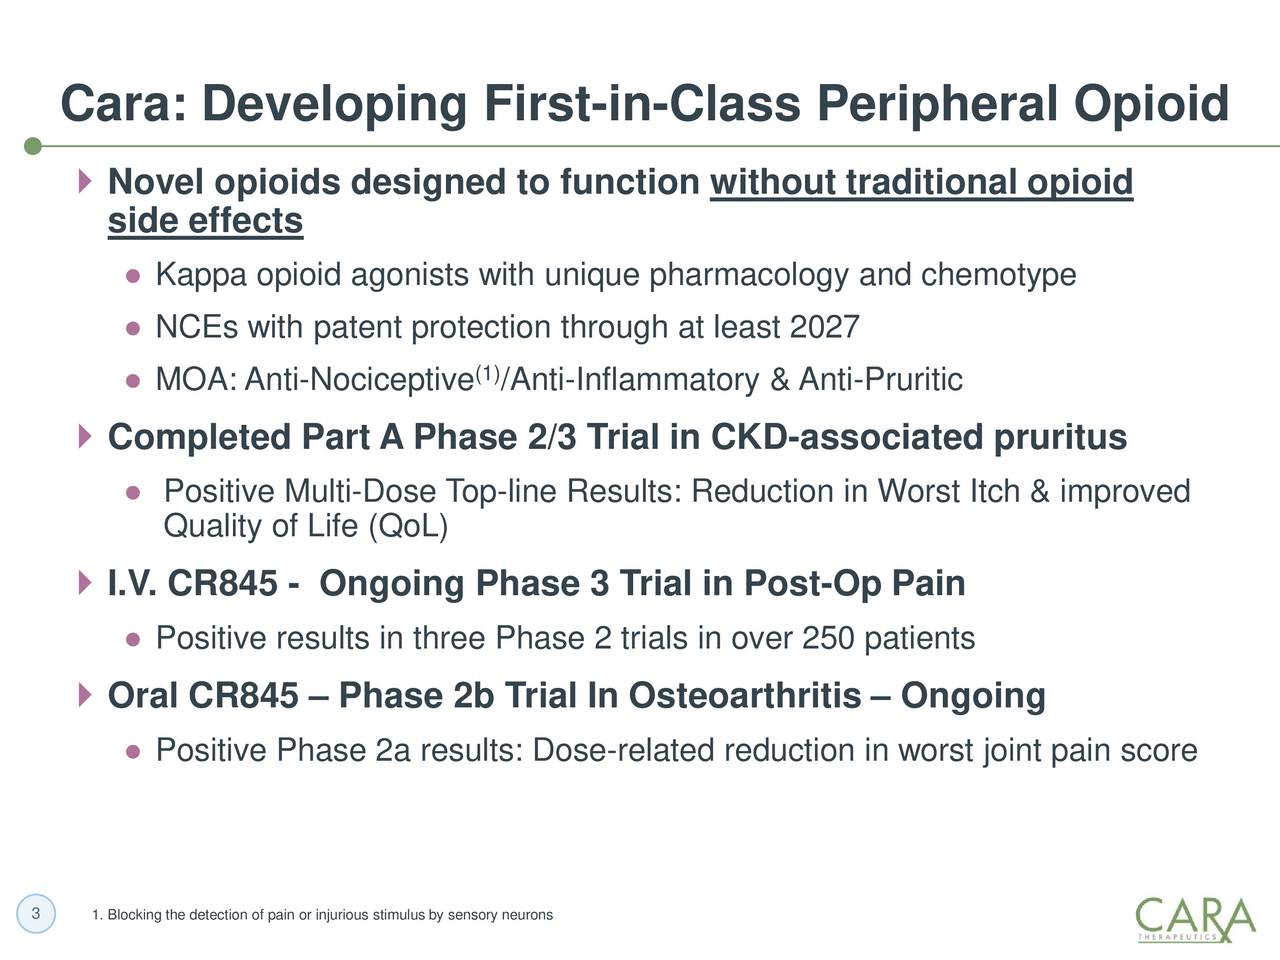 Novel opioids designed to function without traditional opioid side effects Kappa opioid agonists with unique pharmacology and chemotype NCEs with patent protection through at least 2027 MOA: Anti-Nociceptive /Anti-Inflammatory & Anti-Pruritic Completed Part APhase 2/3 Trial in CKD-associated pruritus Positive Multi-Dose Top-line Results: Reduction in Worst Itch & improved Quality of Life (QoL) I.V. CR845 - Ongoing Phase 3 Trial in Post-Op Pain Positive results in three Phase 2 trials in over 250 patients Oral CR845  Phase 2b Trial In Osteoarthritis  Ongoing Positive Phase 2a results: Dose-related reduction in worst joint pain score 3 1. Blocking the detection of pain or injurious stimulus by sensory neurons